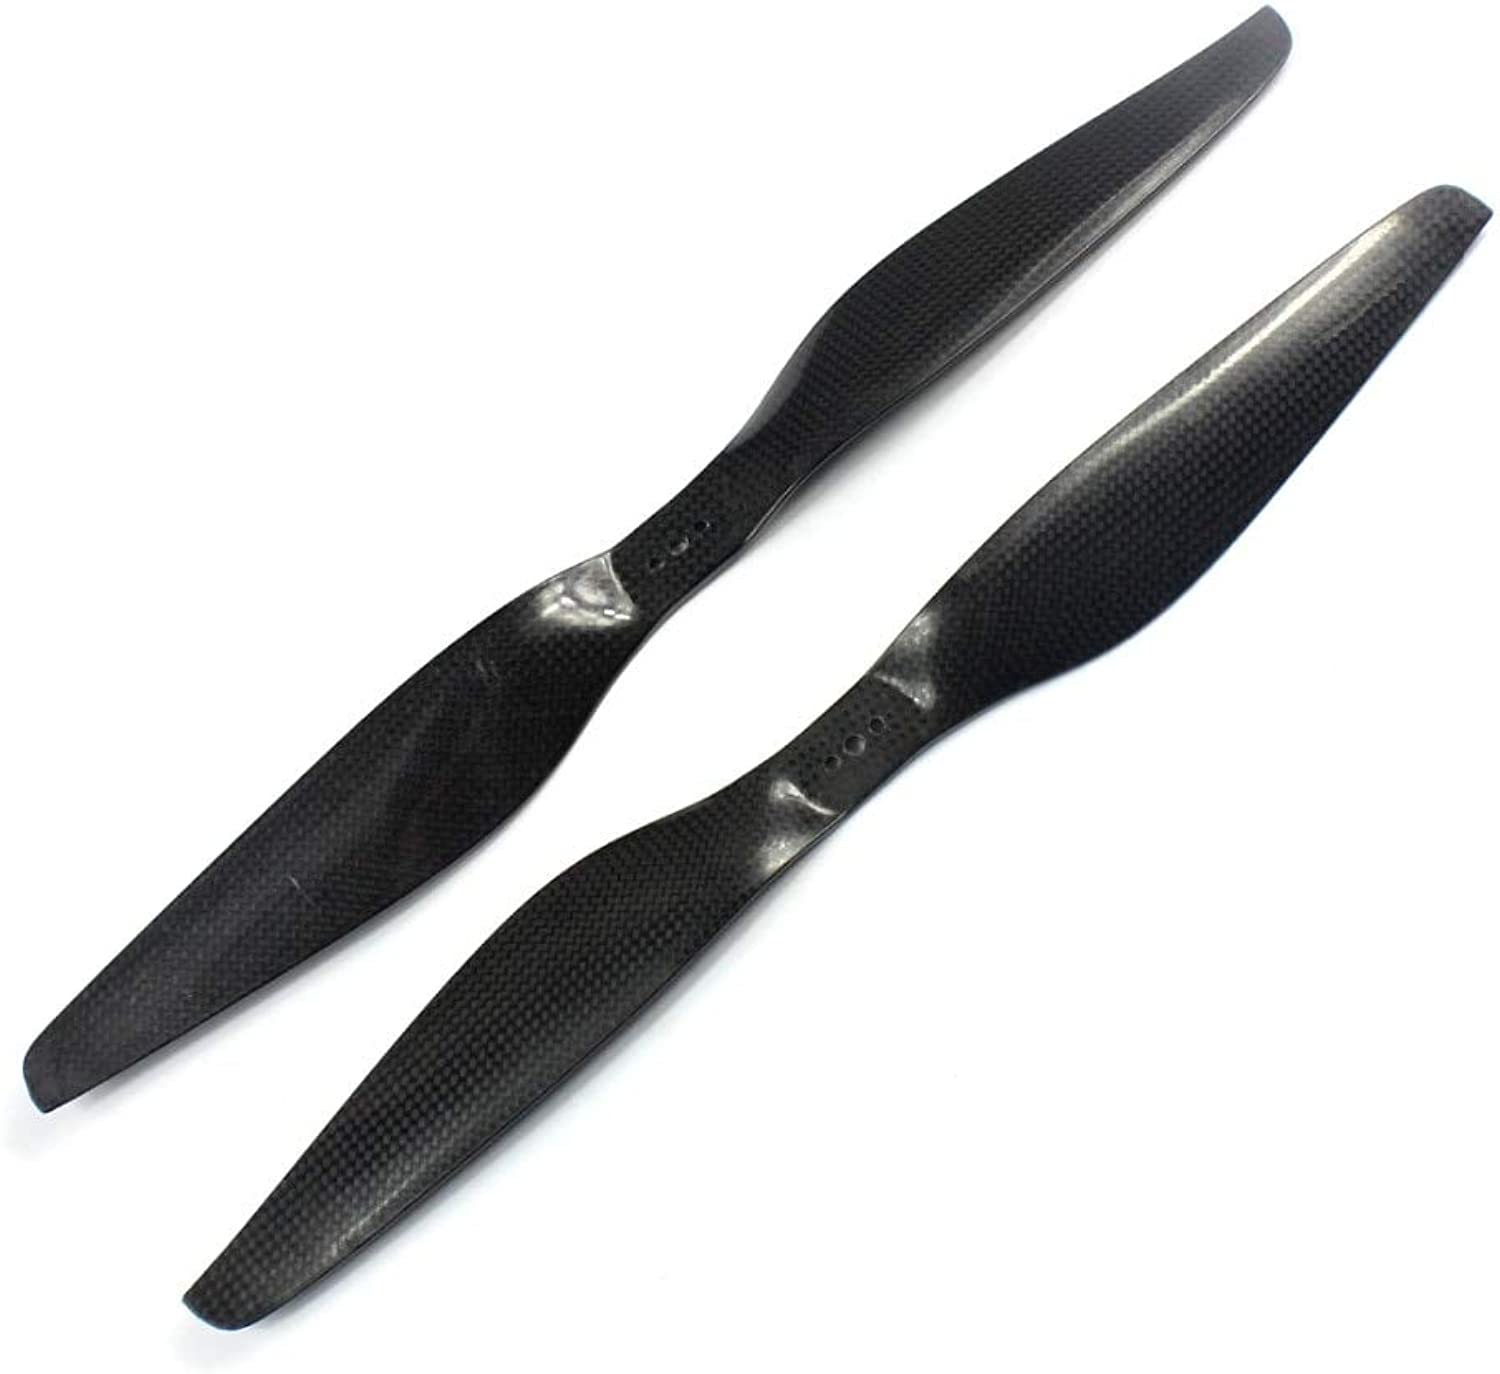 Generic F07288 Tared 1 Pair Carbon Fiber 14 X 4.5 Props 1455 1455R Propeller CW   CCW TL2830 Black for Multicopter